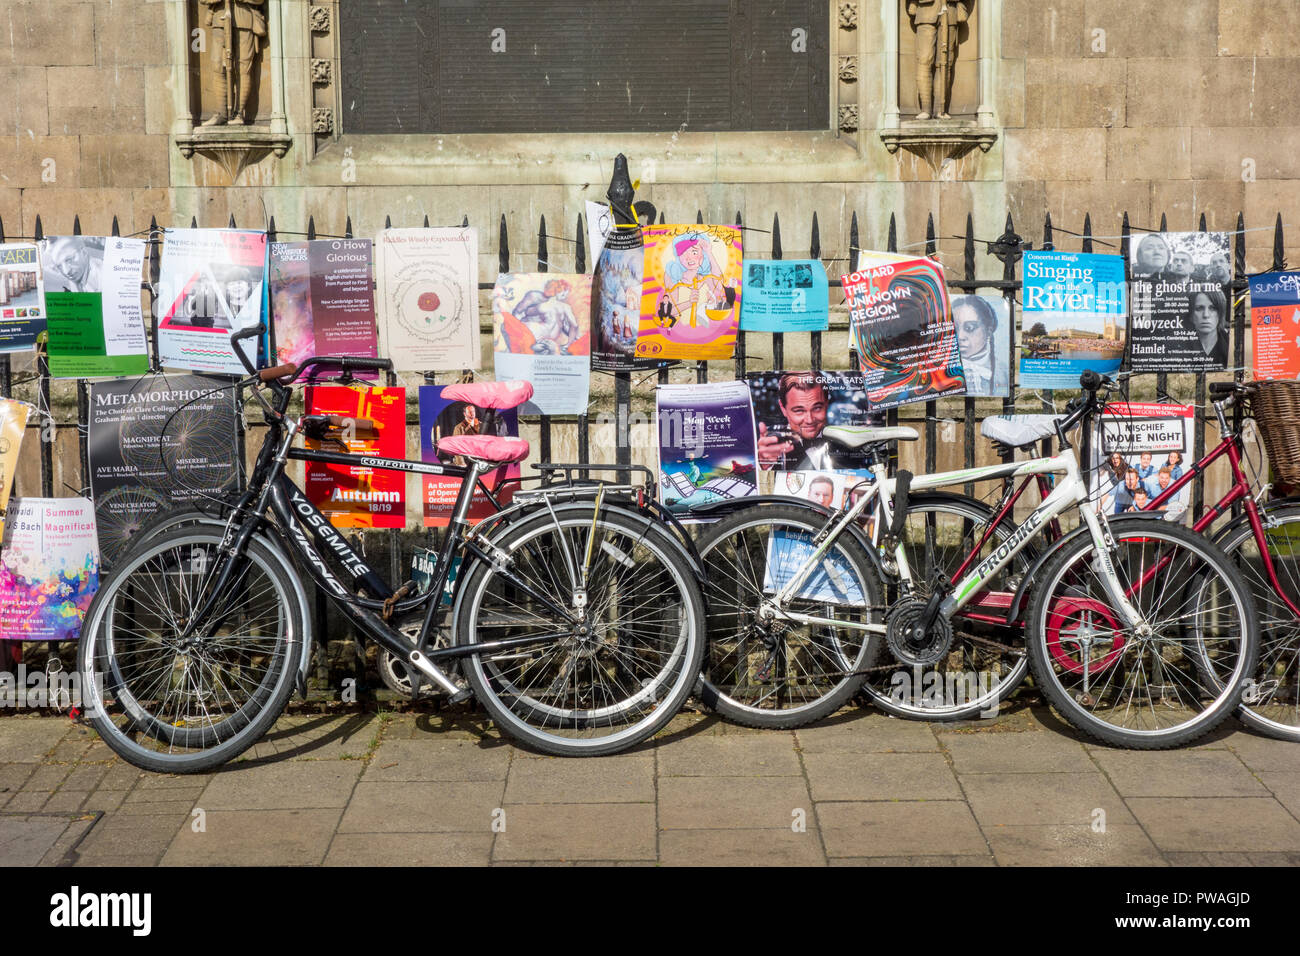 Bicycles chained to railings surrounded by posters or flyers outside Great St Mary's Church, Cambridge, UK - Stock Image